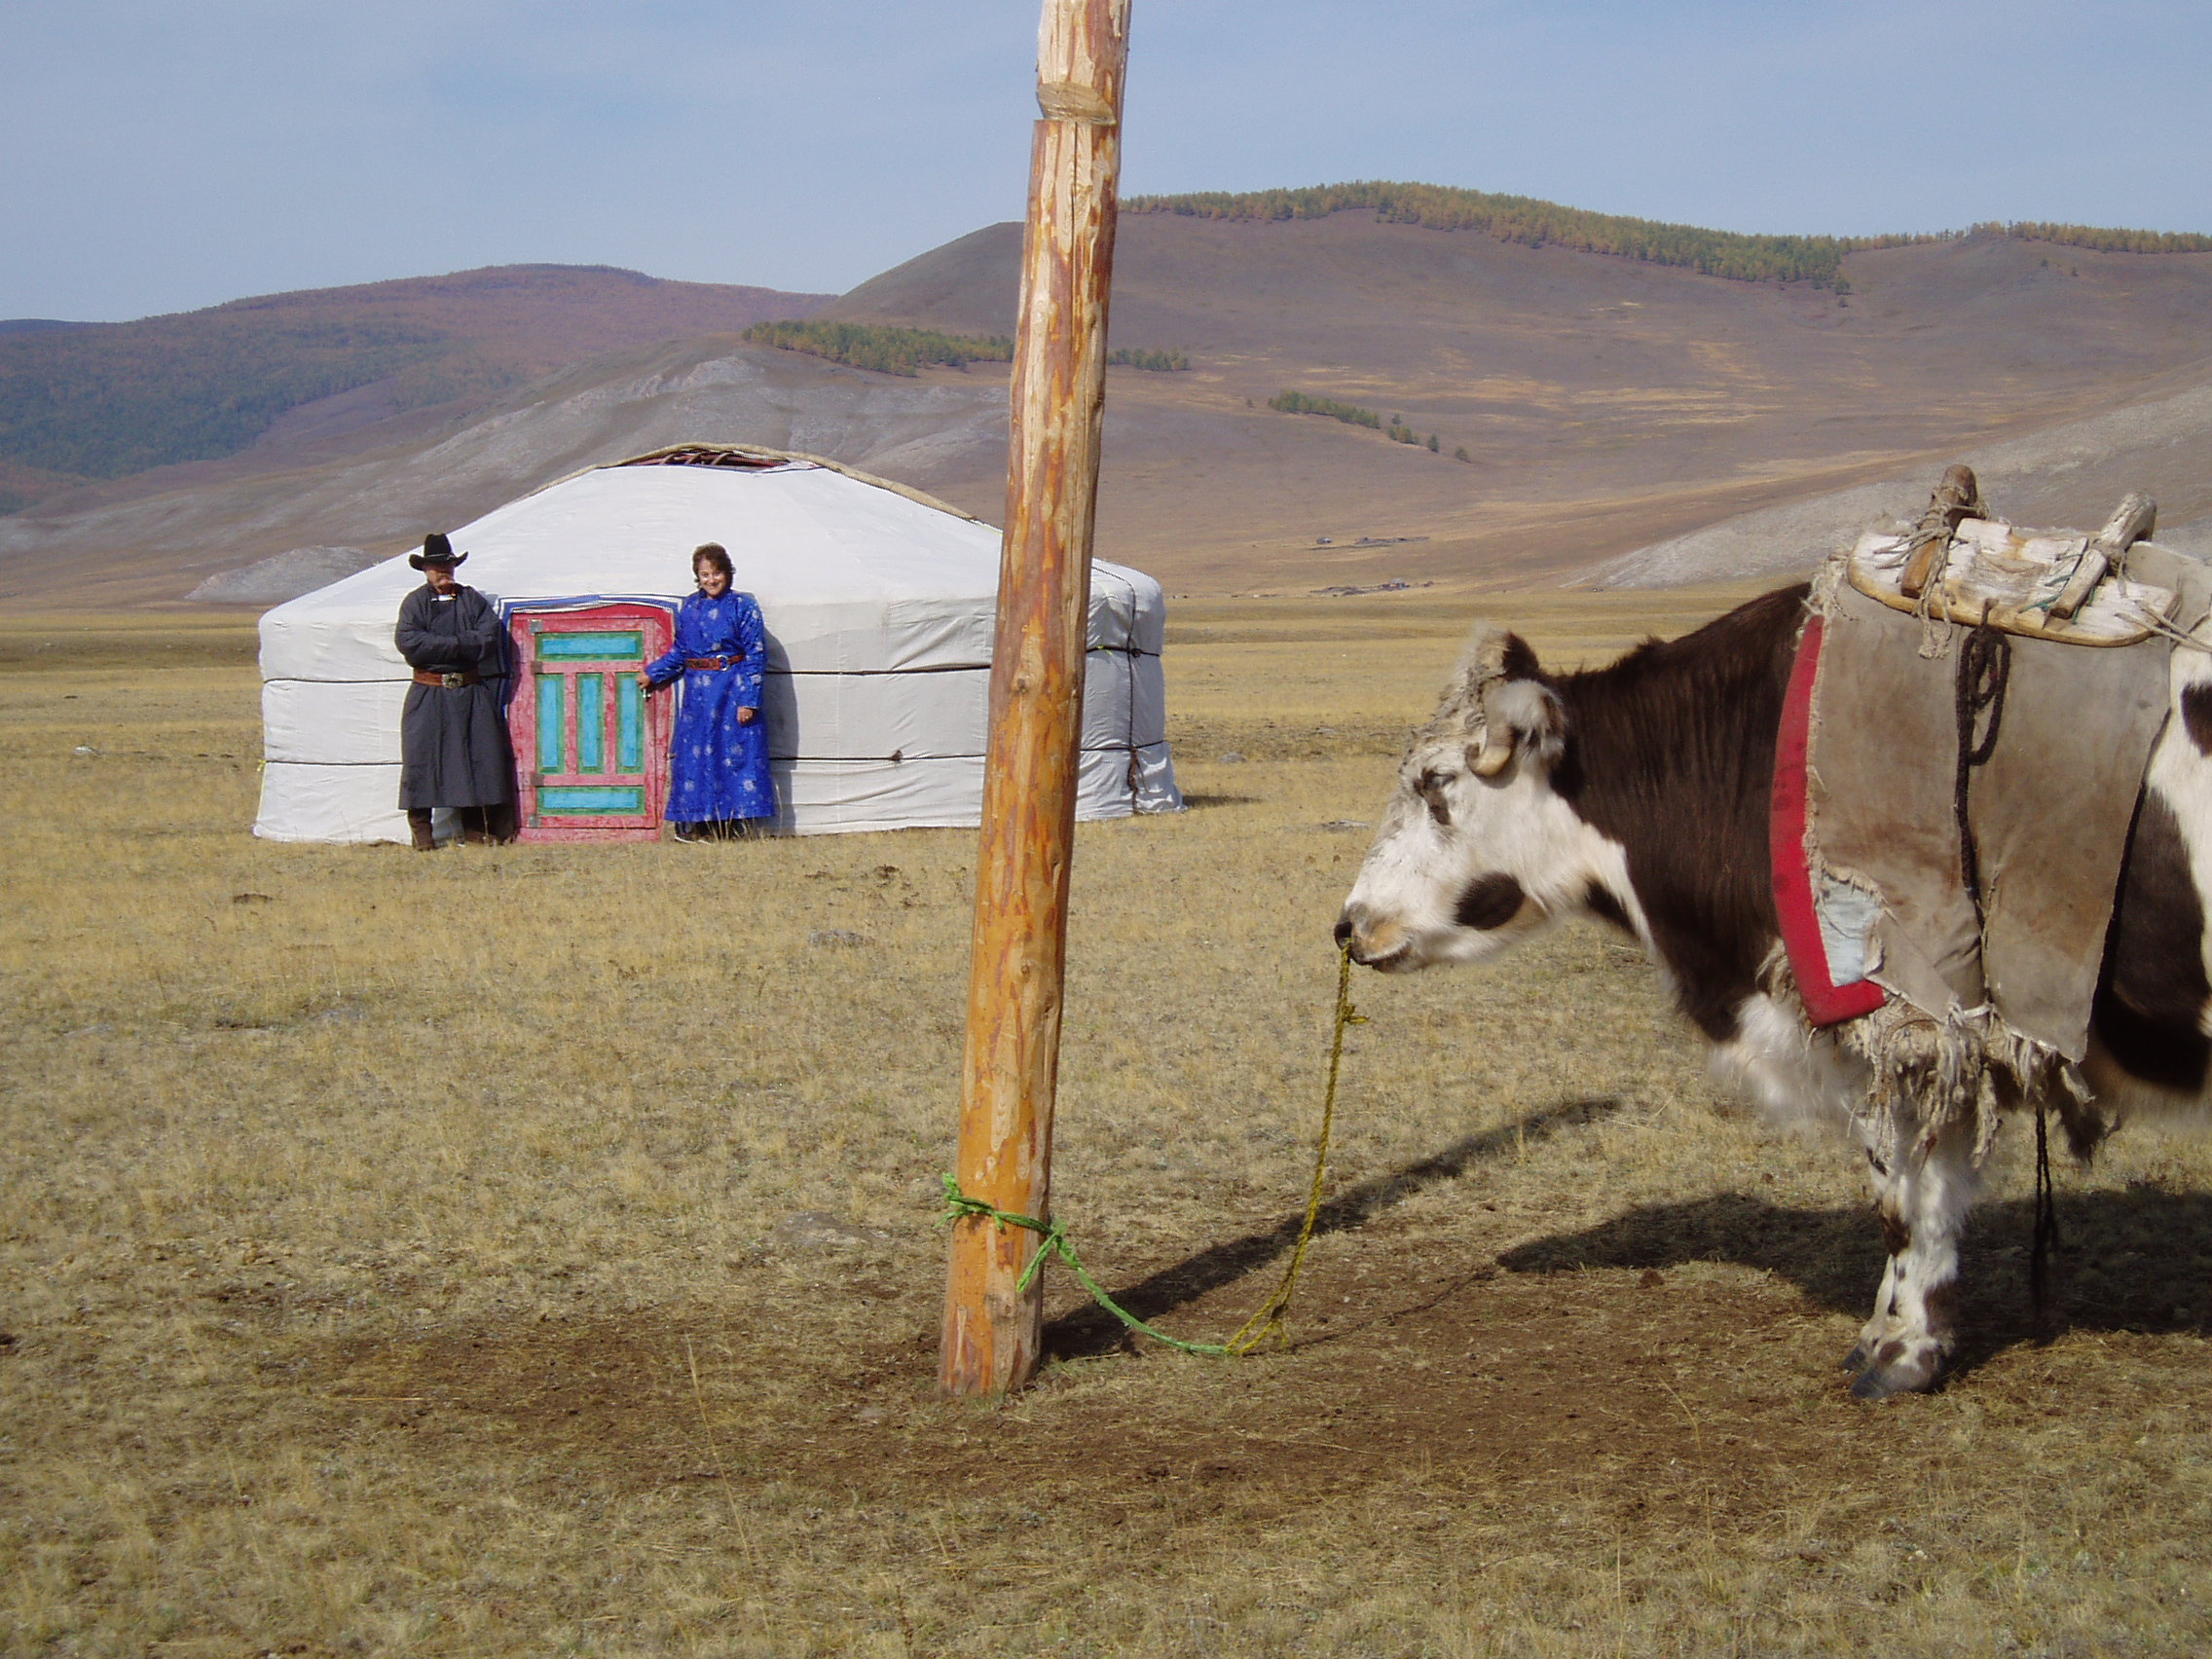 The nomadic group we stayed and worked with in the Darhat Valley, North Mongolia, brought us our owngear on this yak.